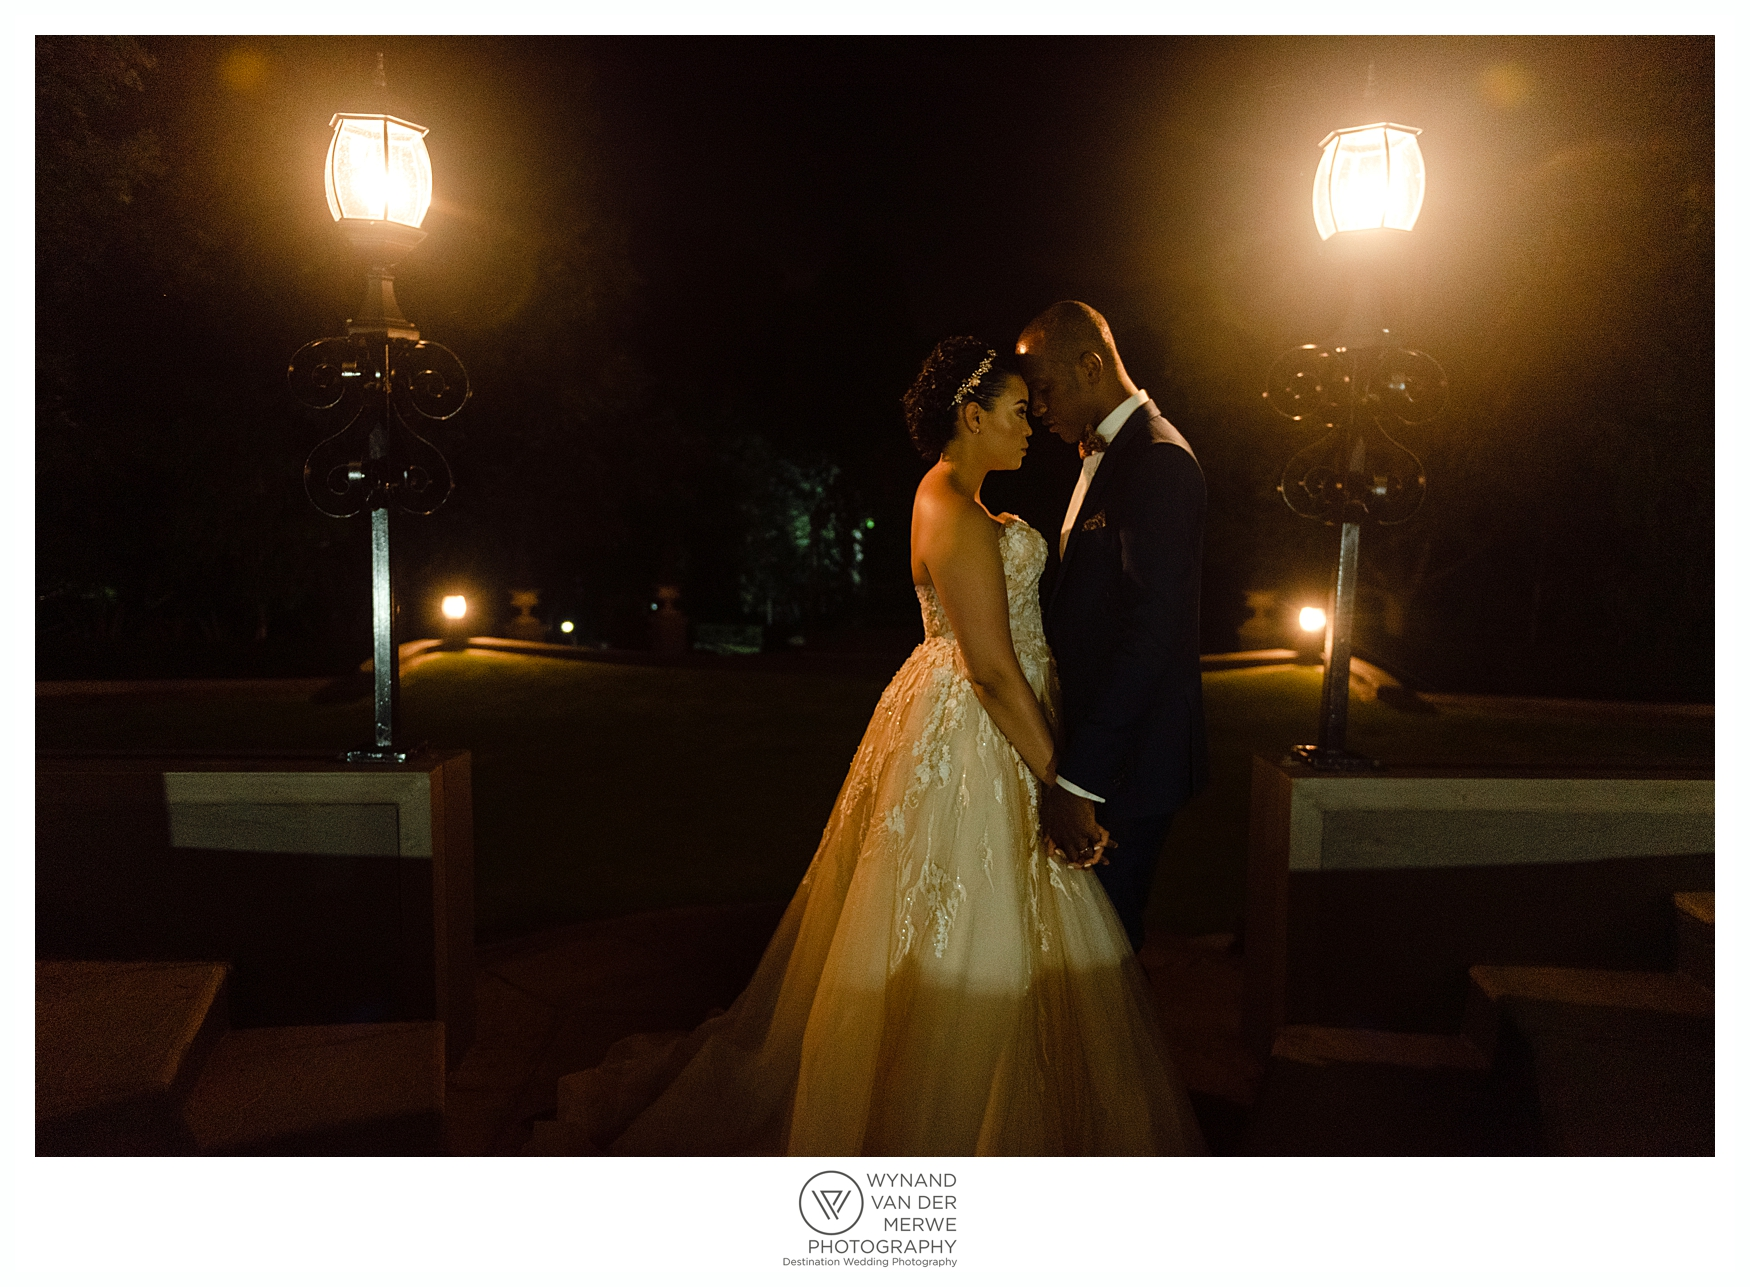 Wynandvandermerwe memoire yannick crystal wedding emotional beautiful gauteng sa-615.jpg